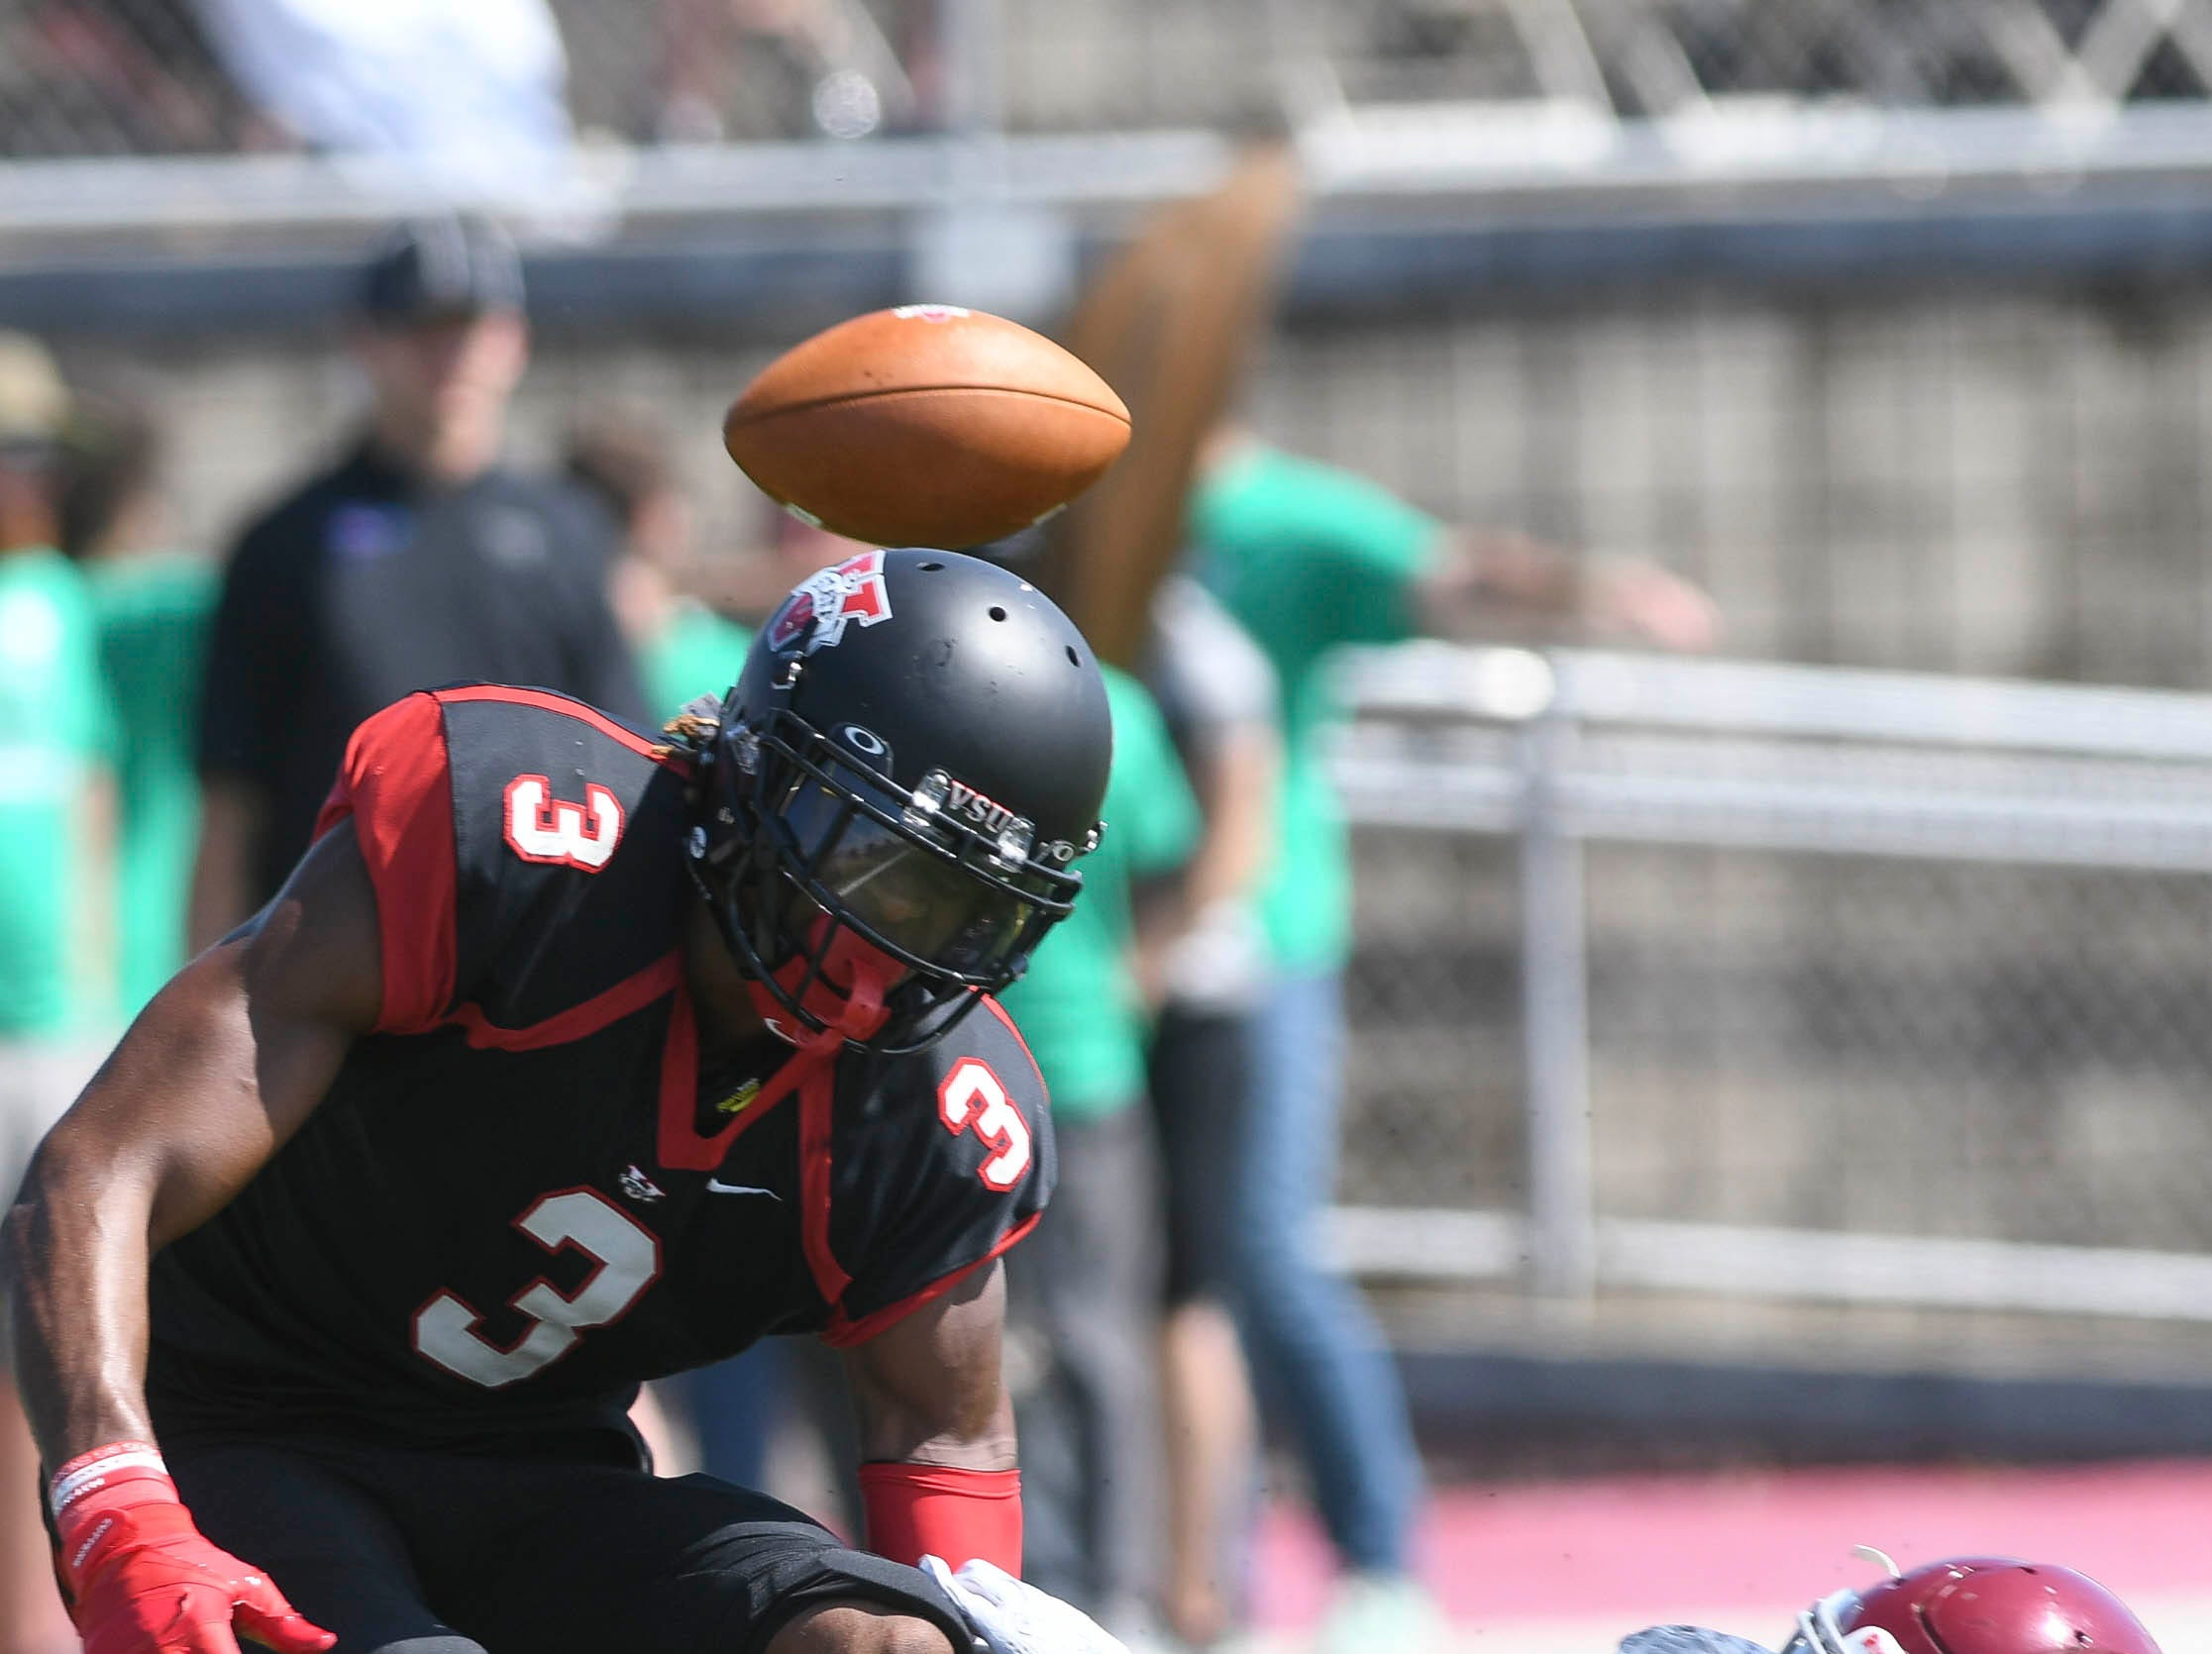 Florida Tech's Tyrone Cromwell breaks up a pass intended for Joe Fortson of Valdosta State during Saturday's game.